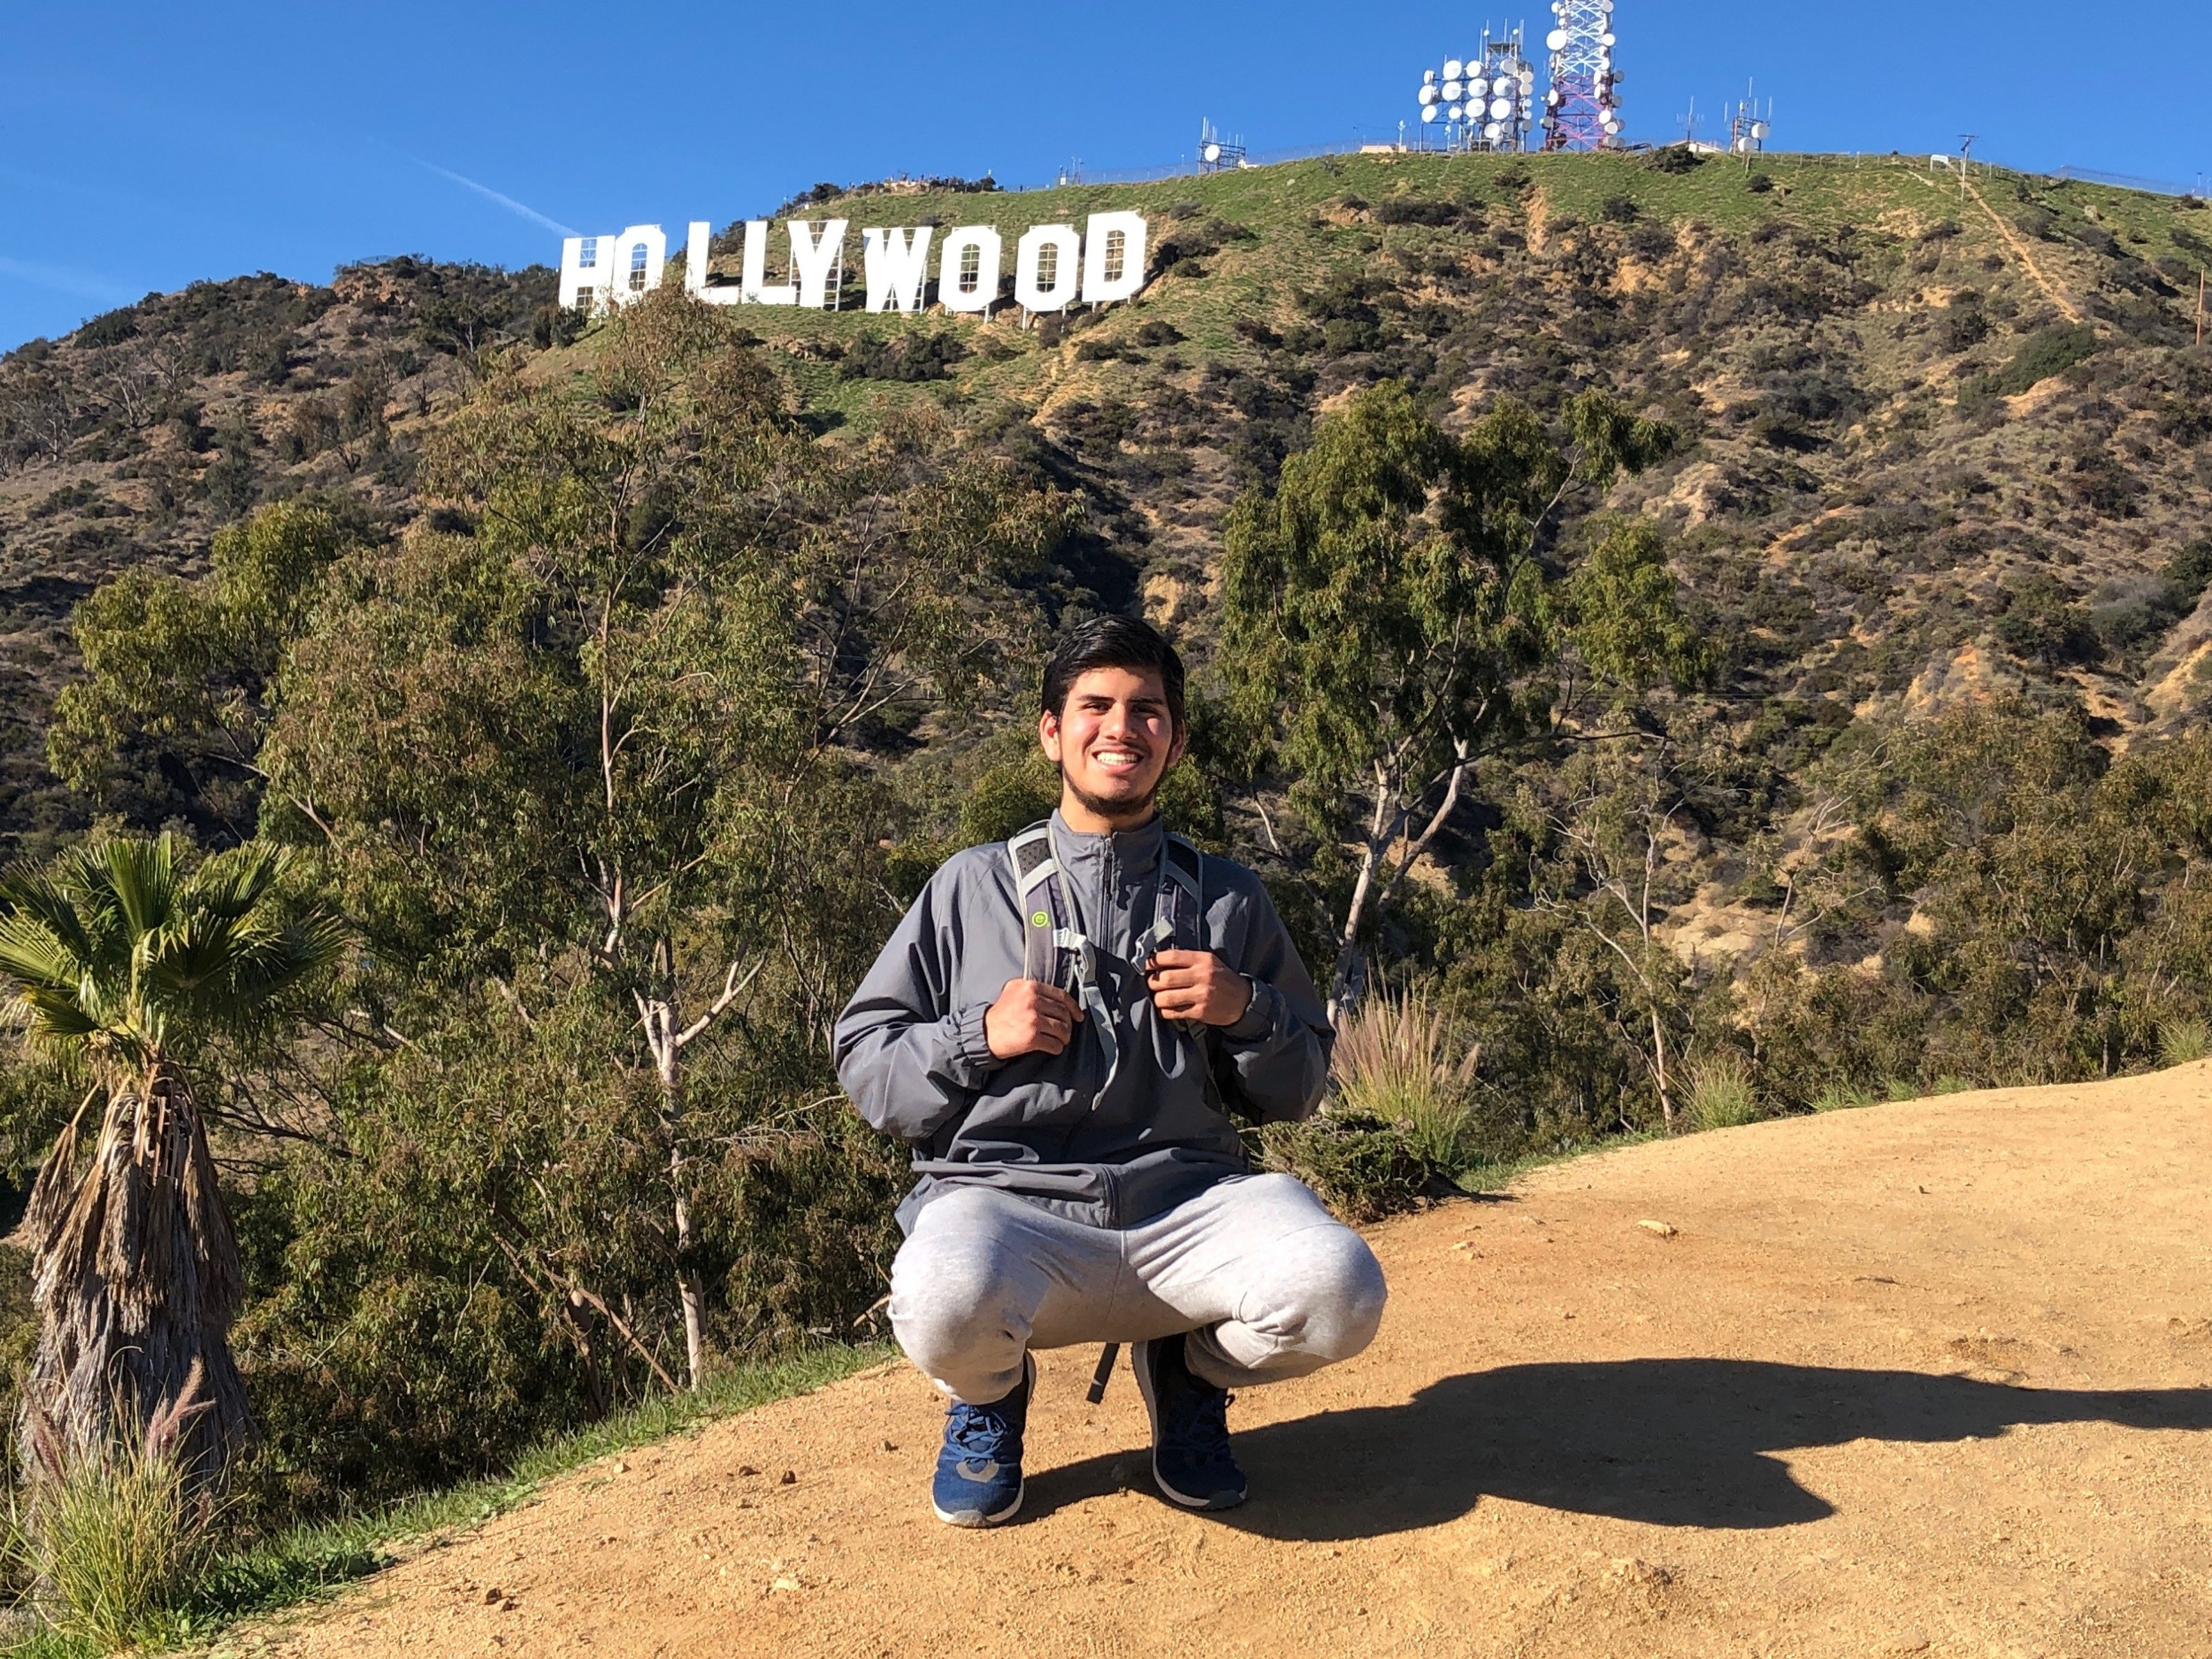 Raul, hispanic male in athletic clothing with a backpack on a hike in Los Angeles with the Hollywood sign behind him.